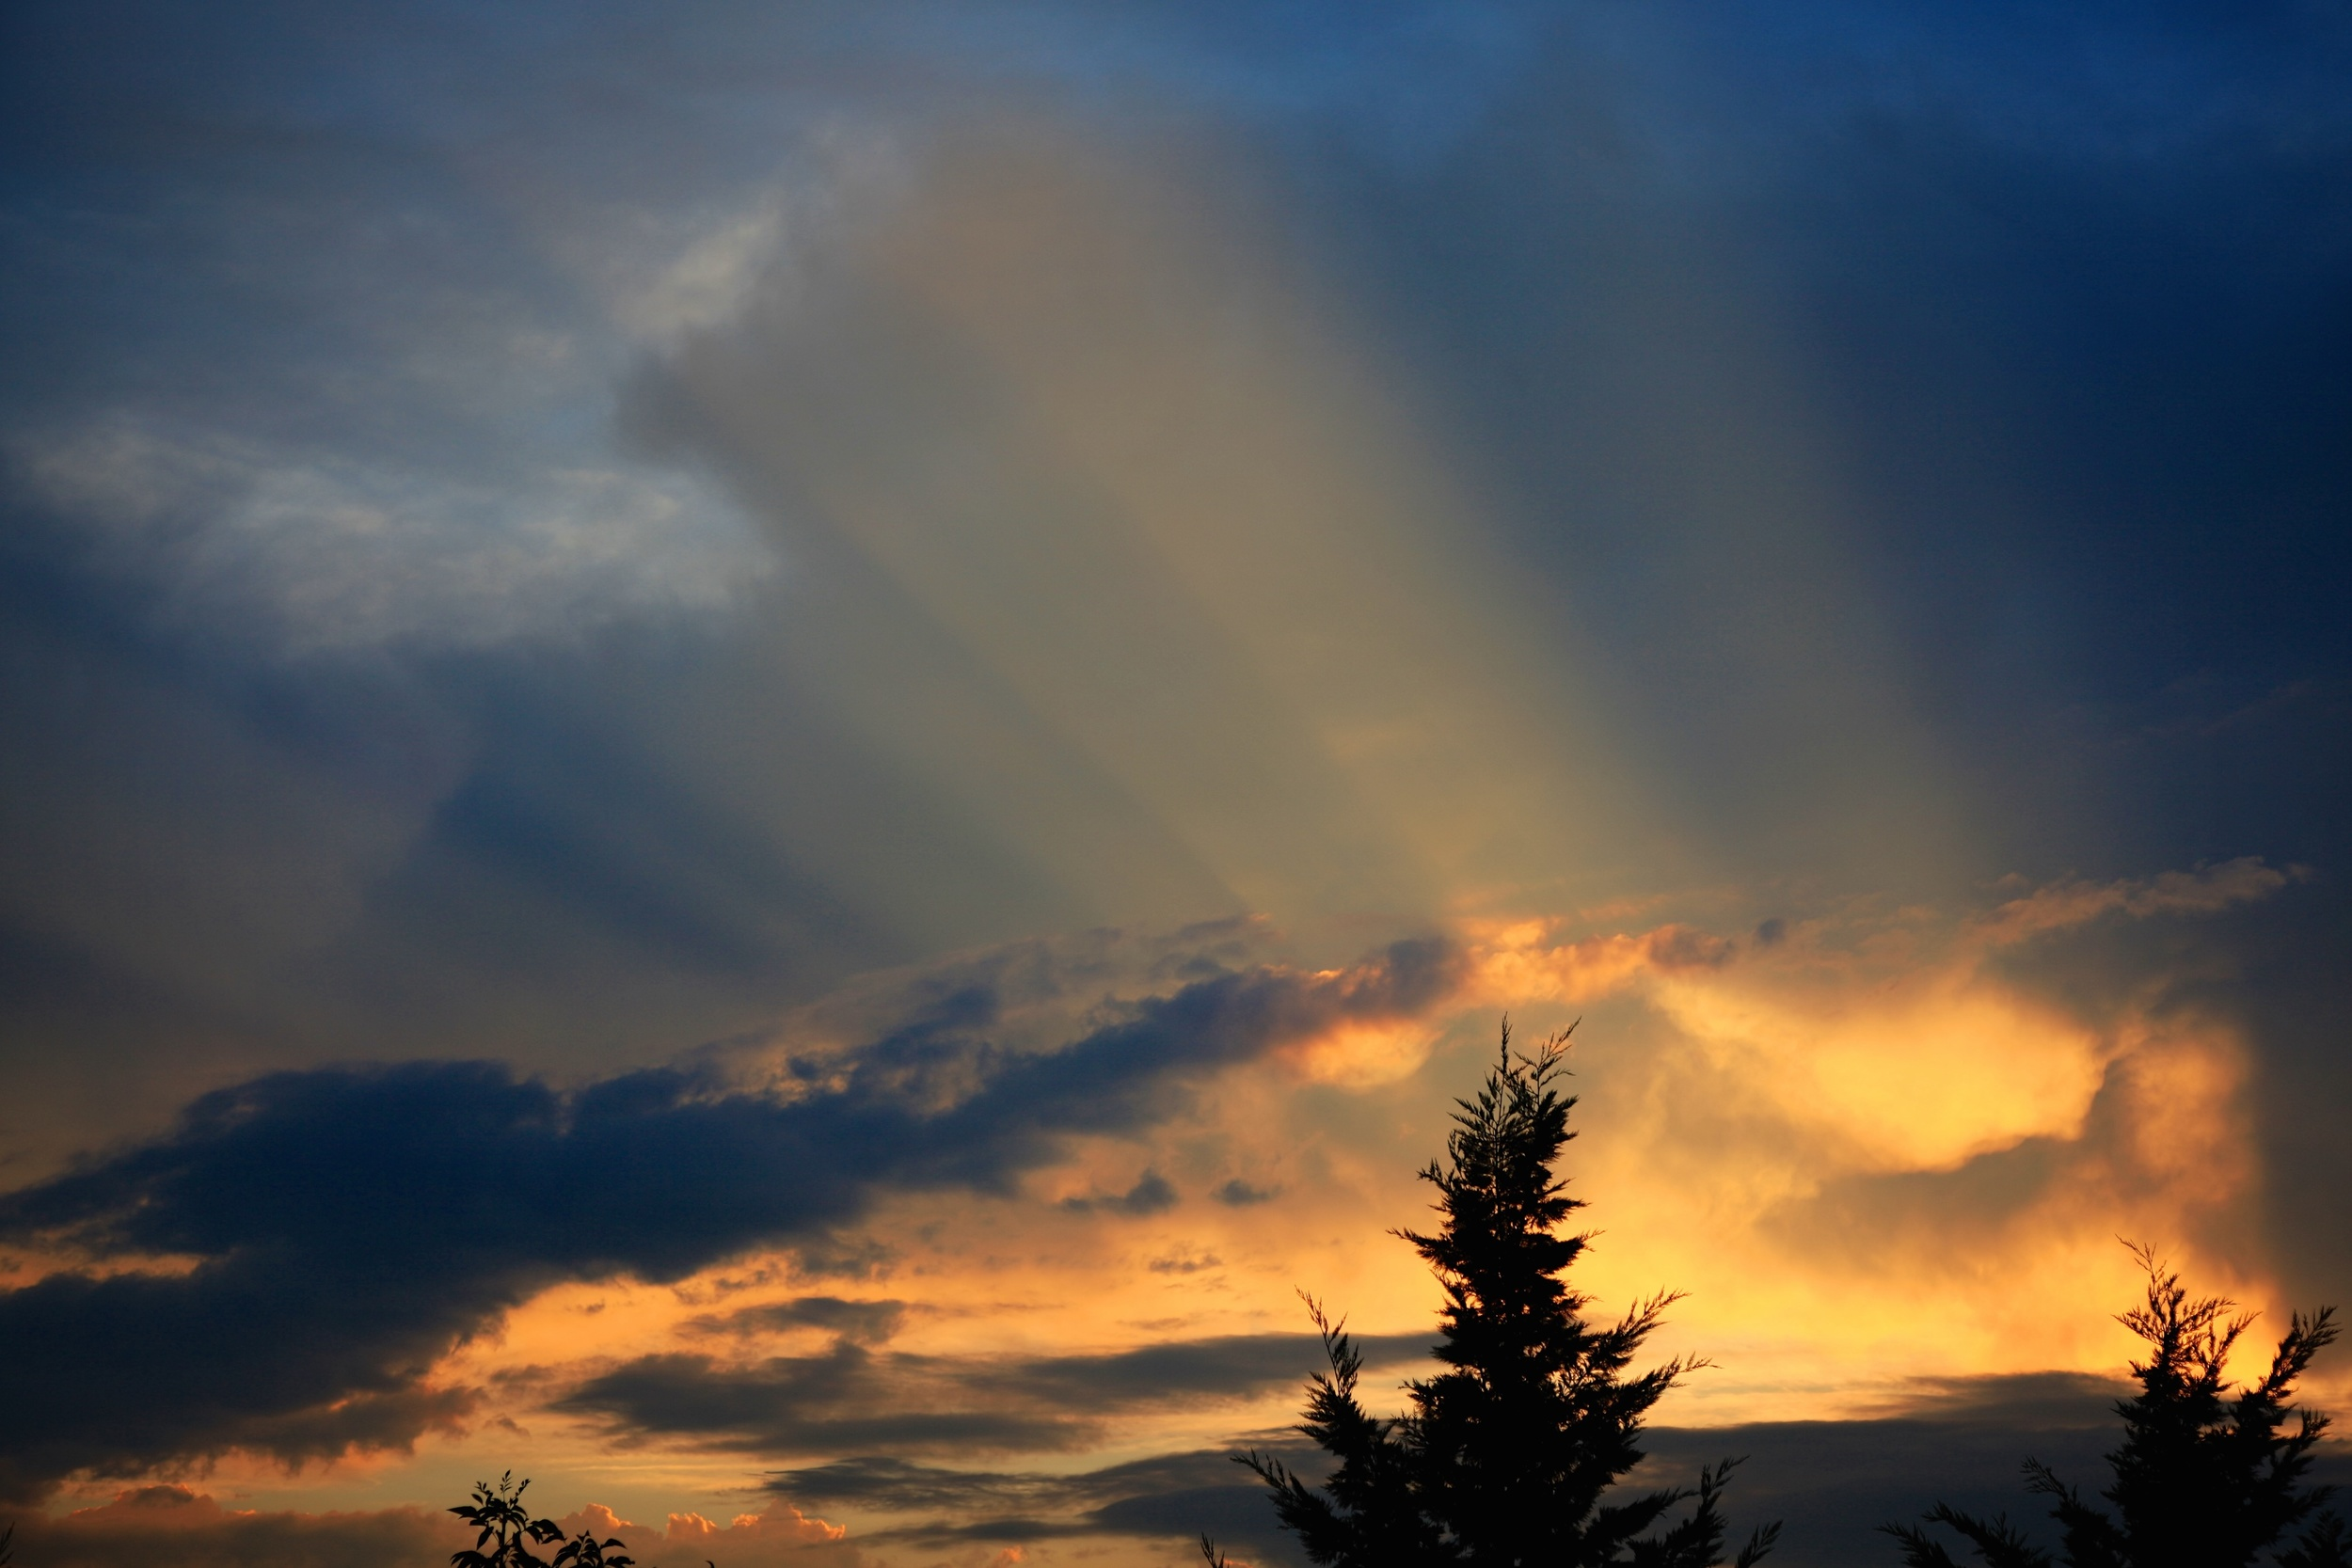 Life goes on, and the sun will rise and set again for many of us after cancer, but not for all. Survivor's guilt is a very normal part of the cancer survivorship experience. It can be tremendously painful, but is also a huge opportunity for growth in our lives.